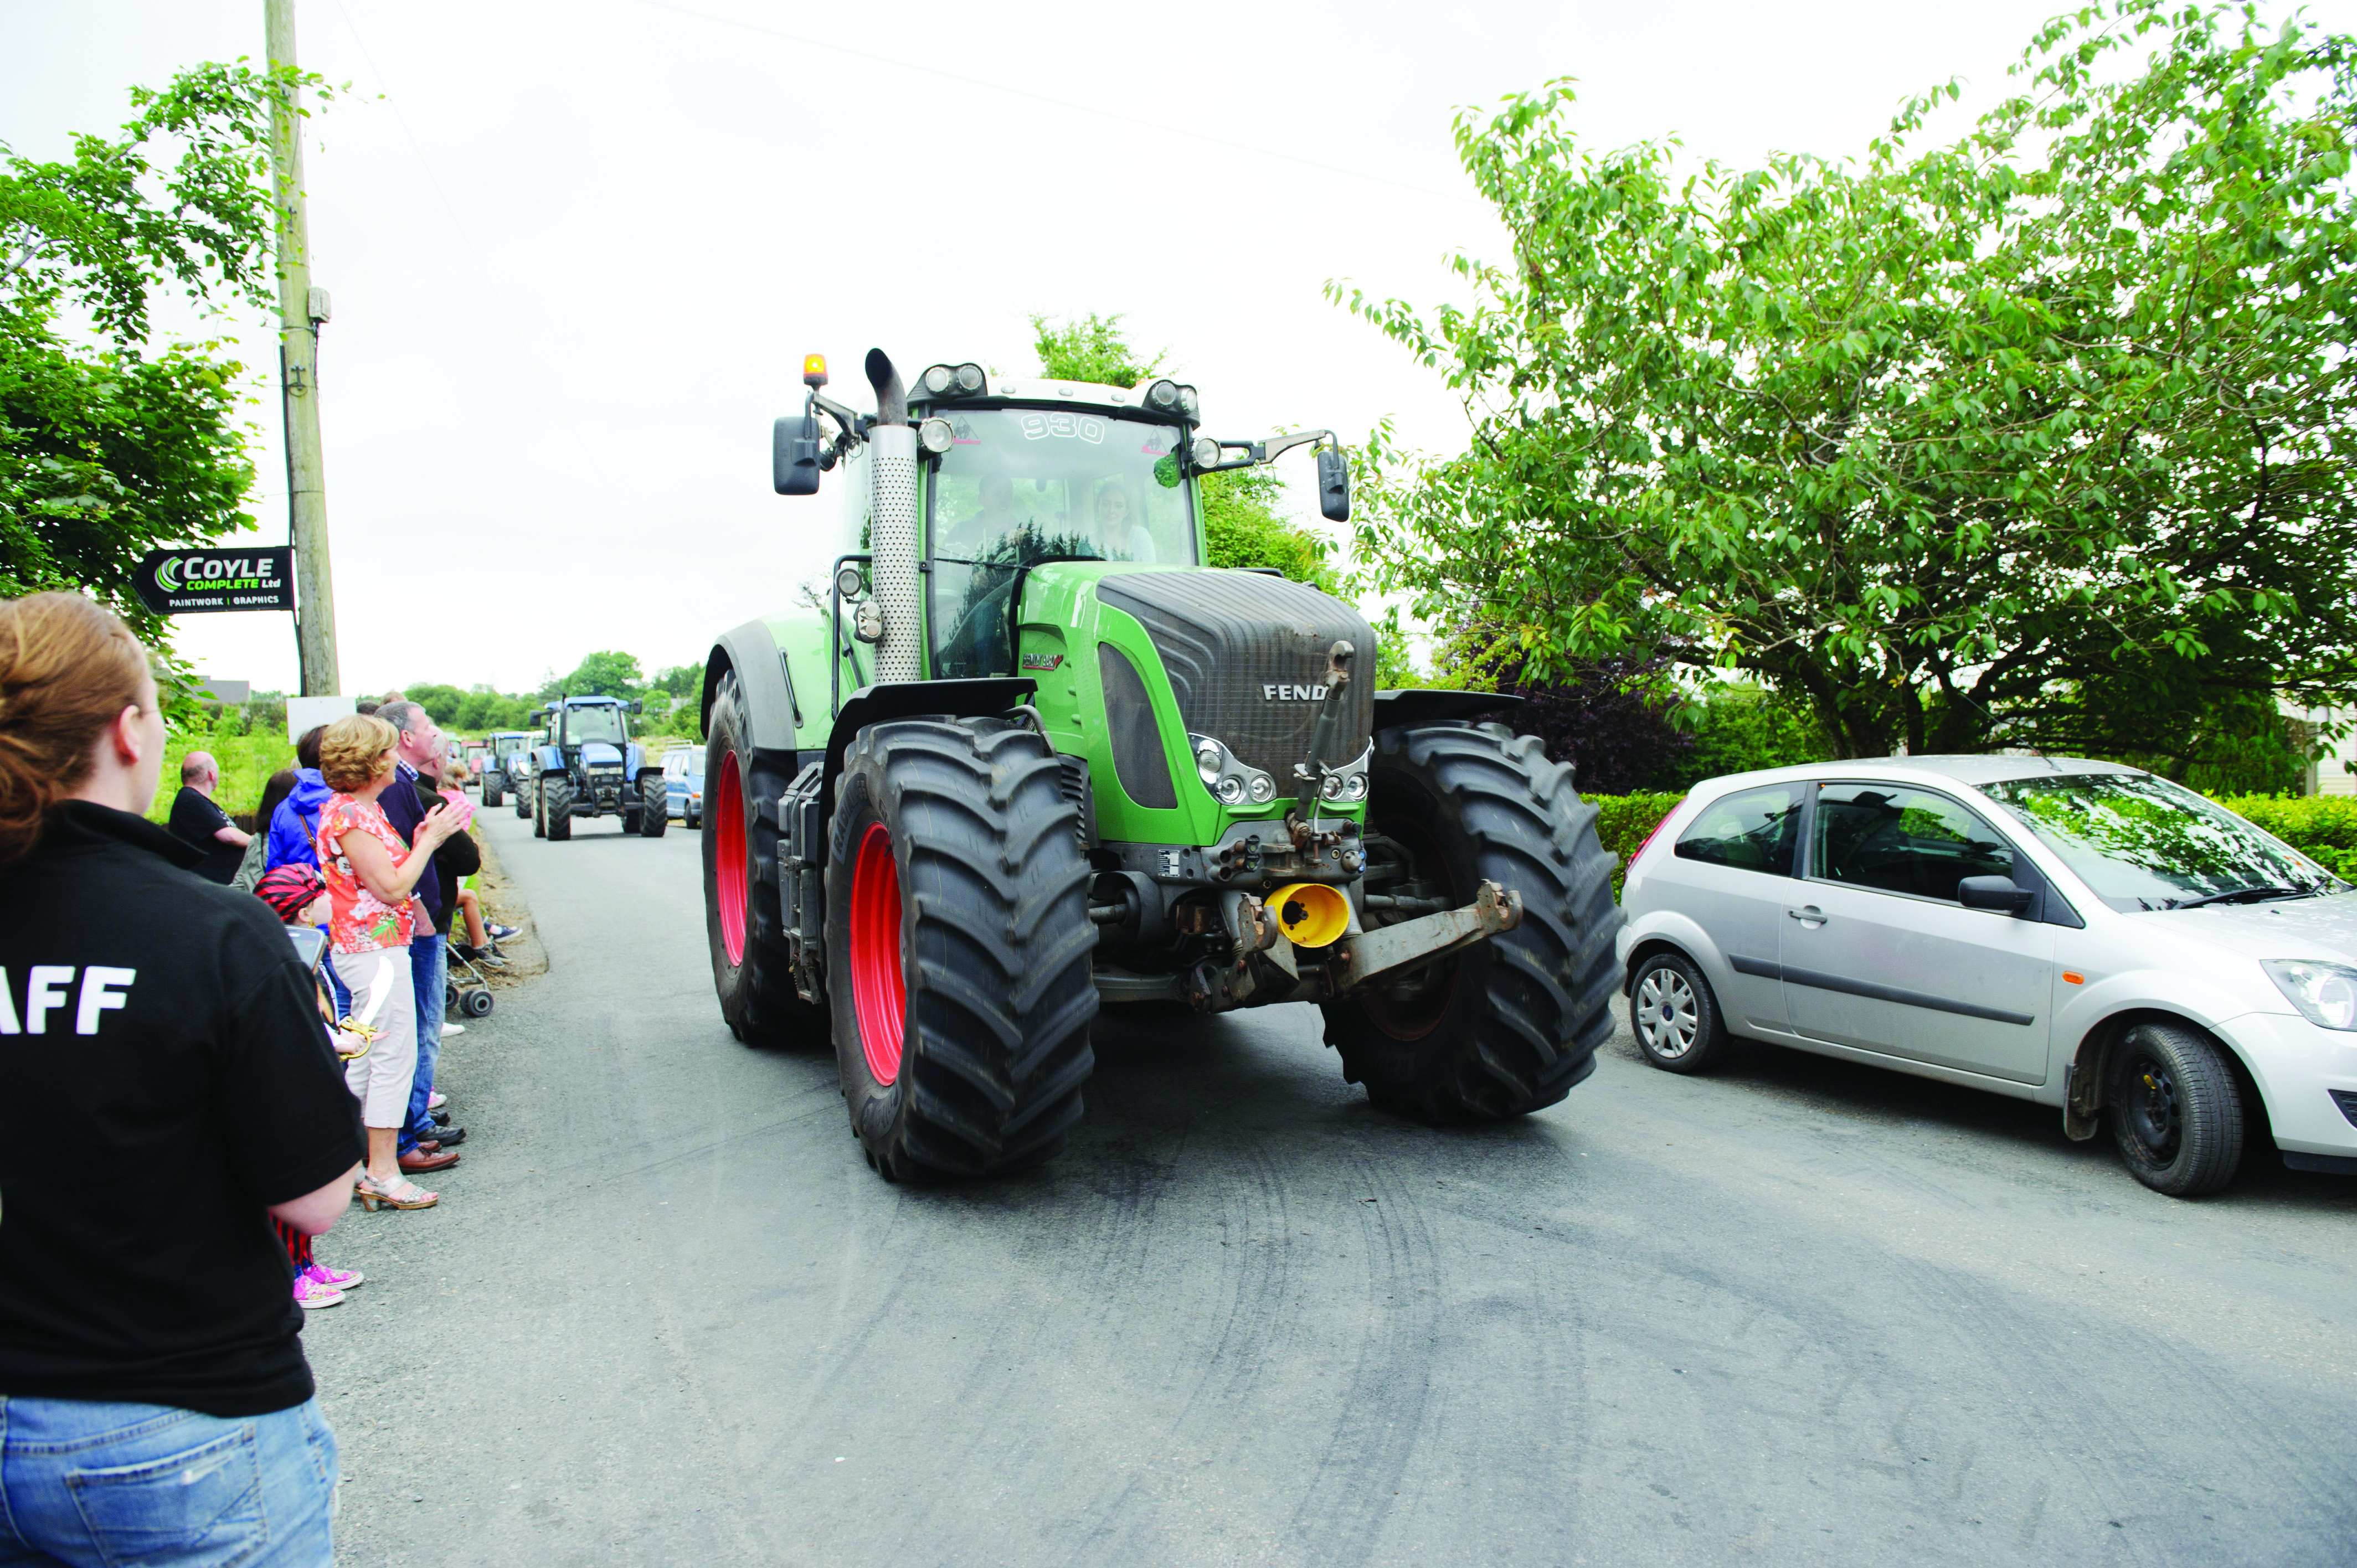 A Fendt tractor taking part in the tractor run at Carrickroe Welcome Home Festival. ©Rory Geary/The Northern Standard